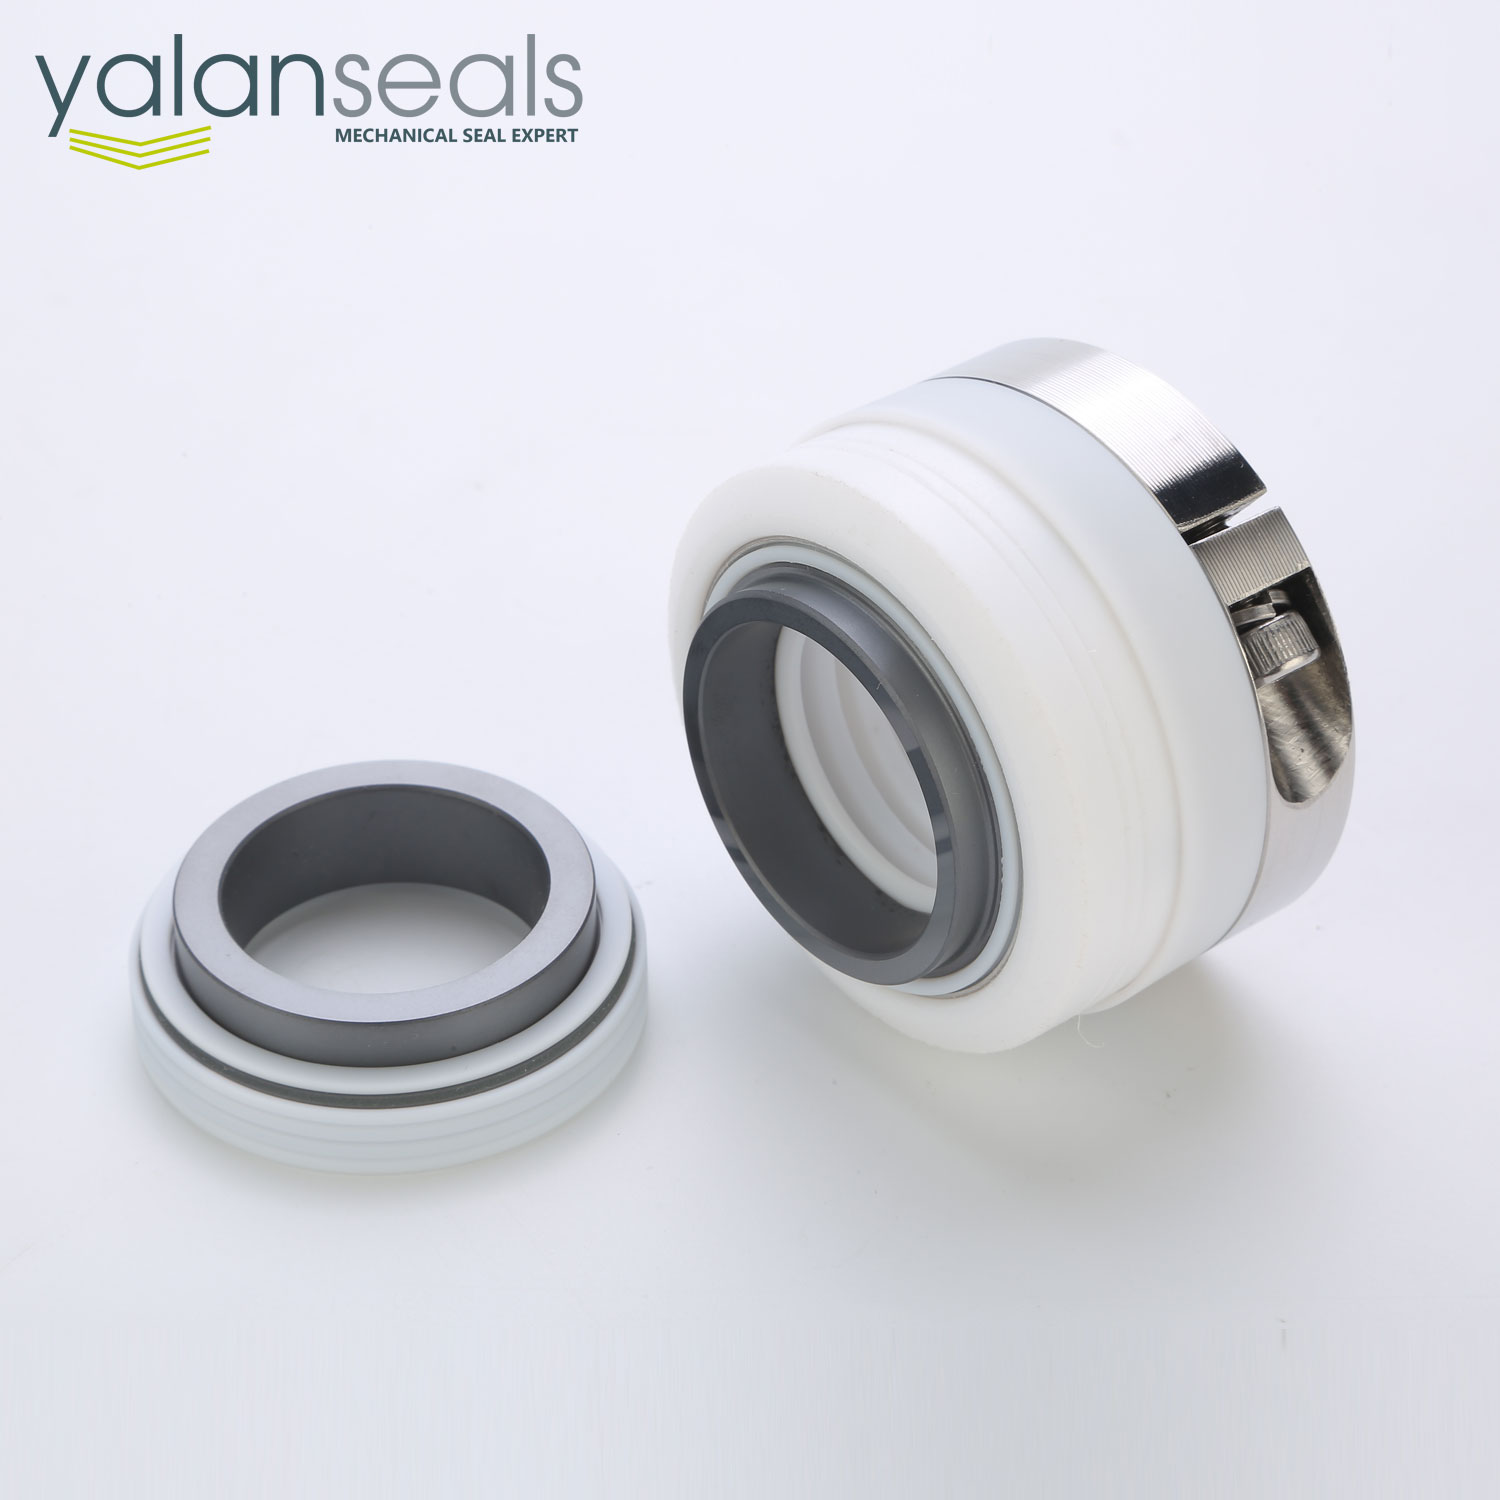 WB2 (Type 152) PTFE Bellow Mechanical Seal